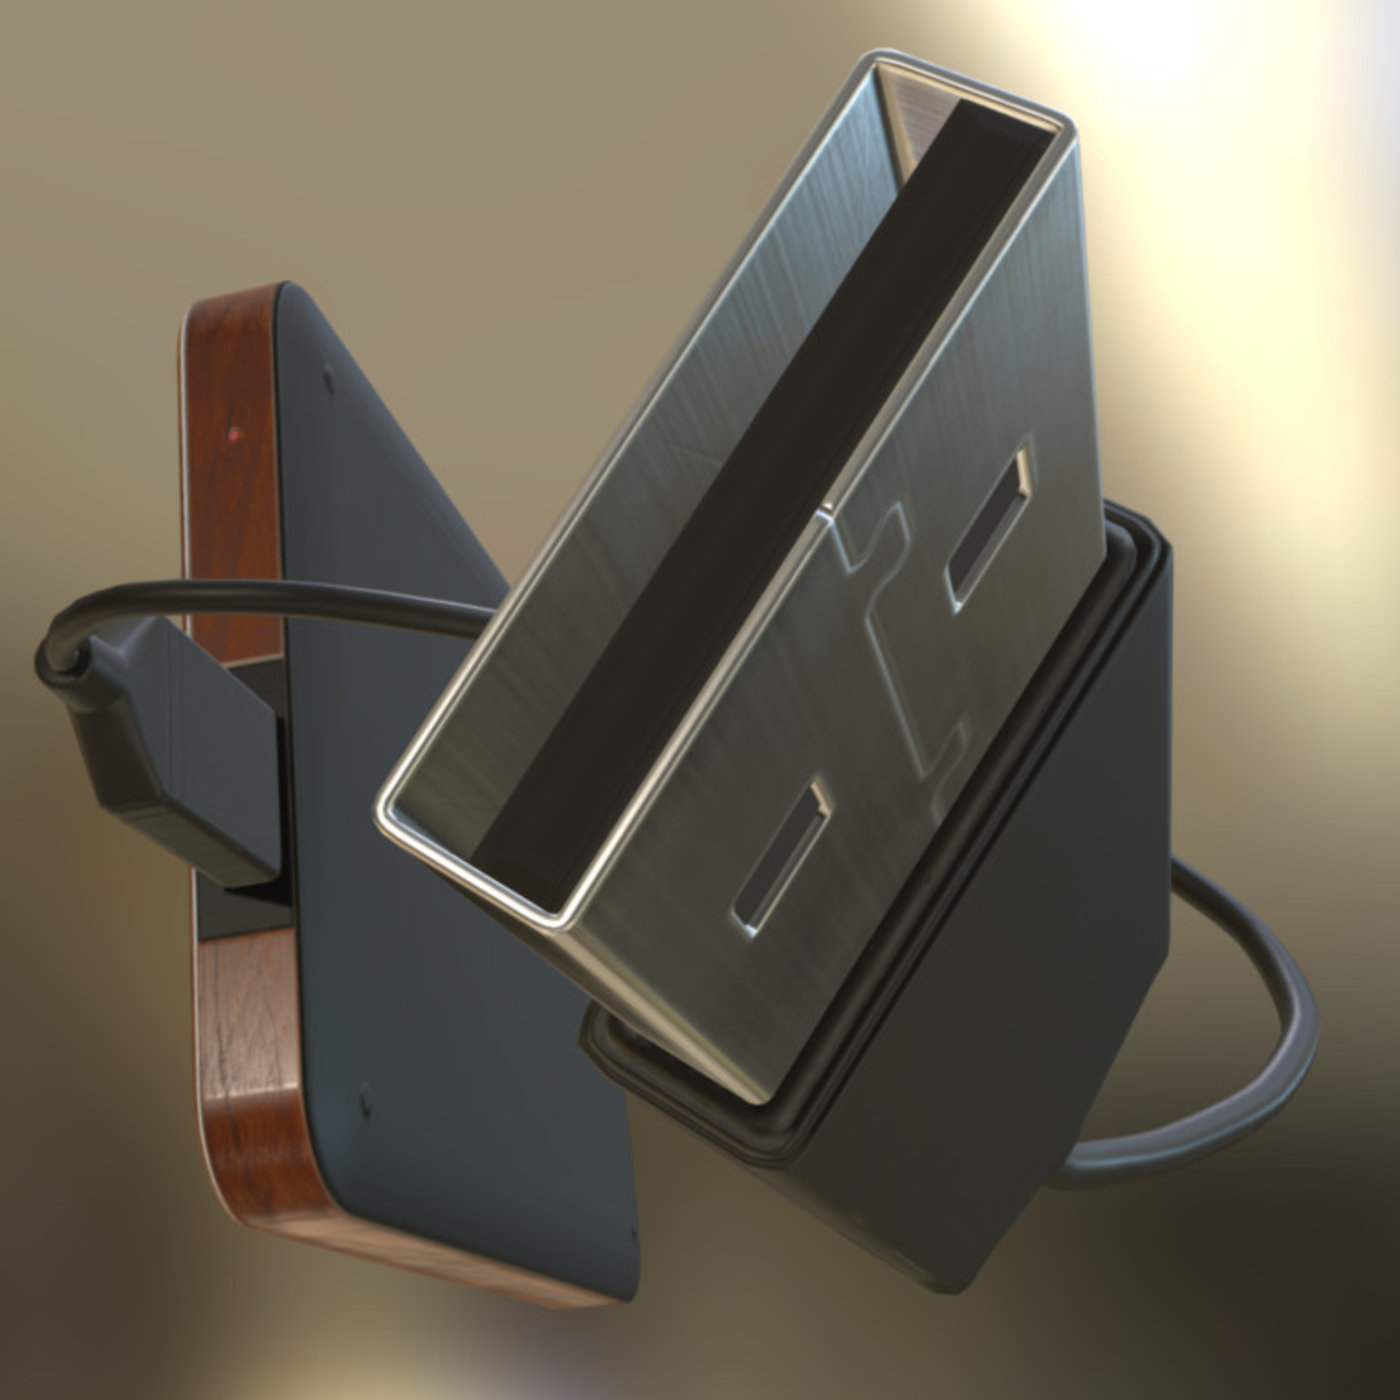 External Hard Drive with rigged USB Cable